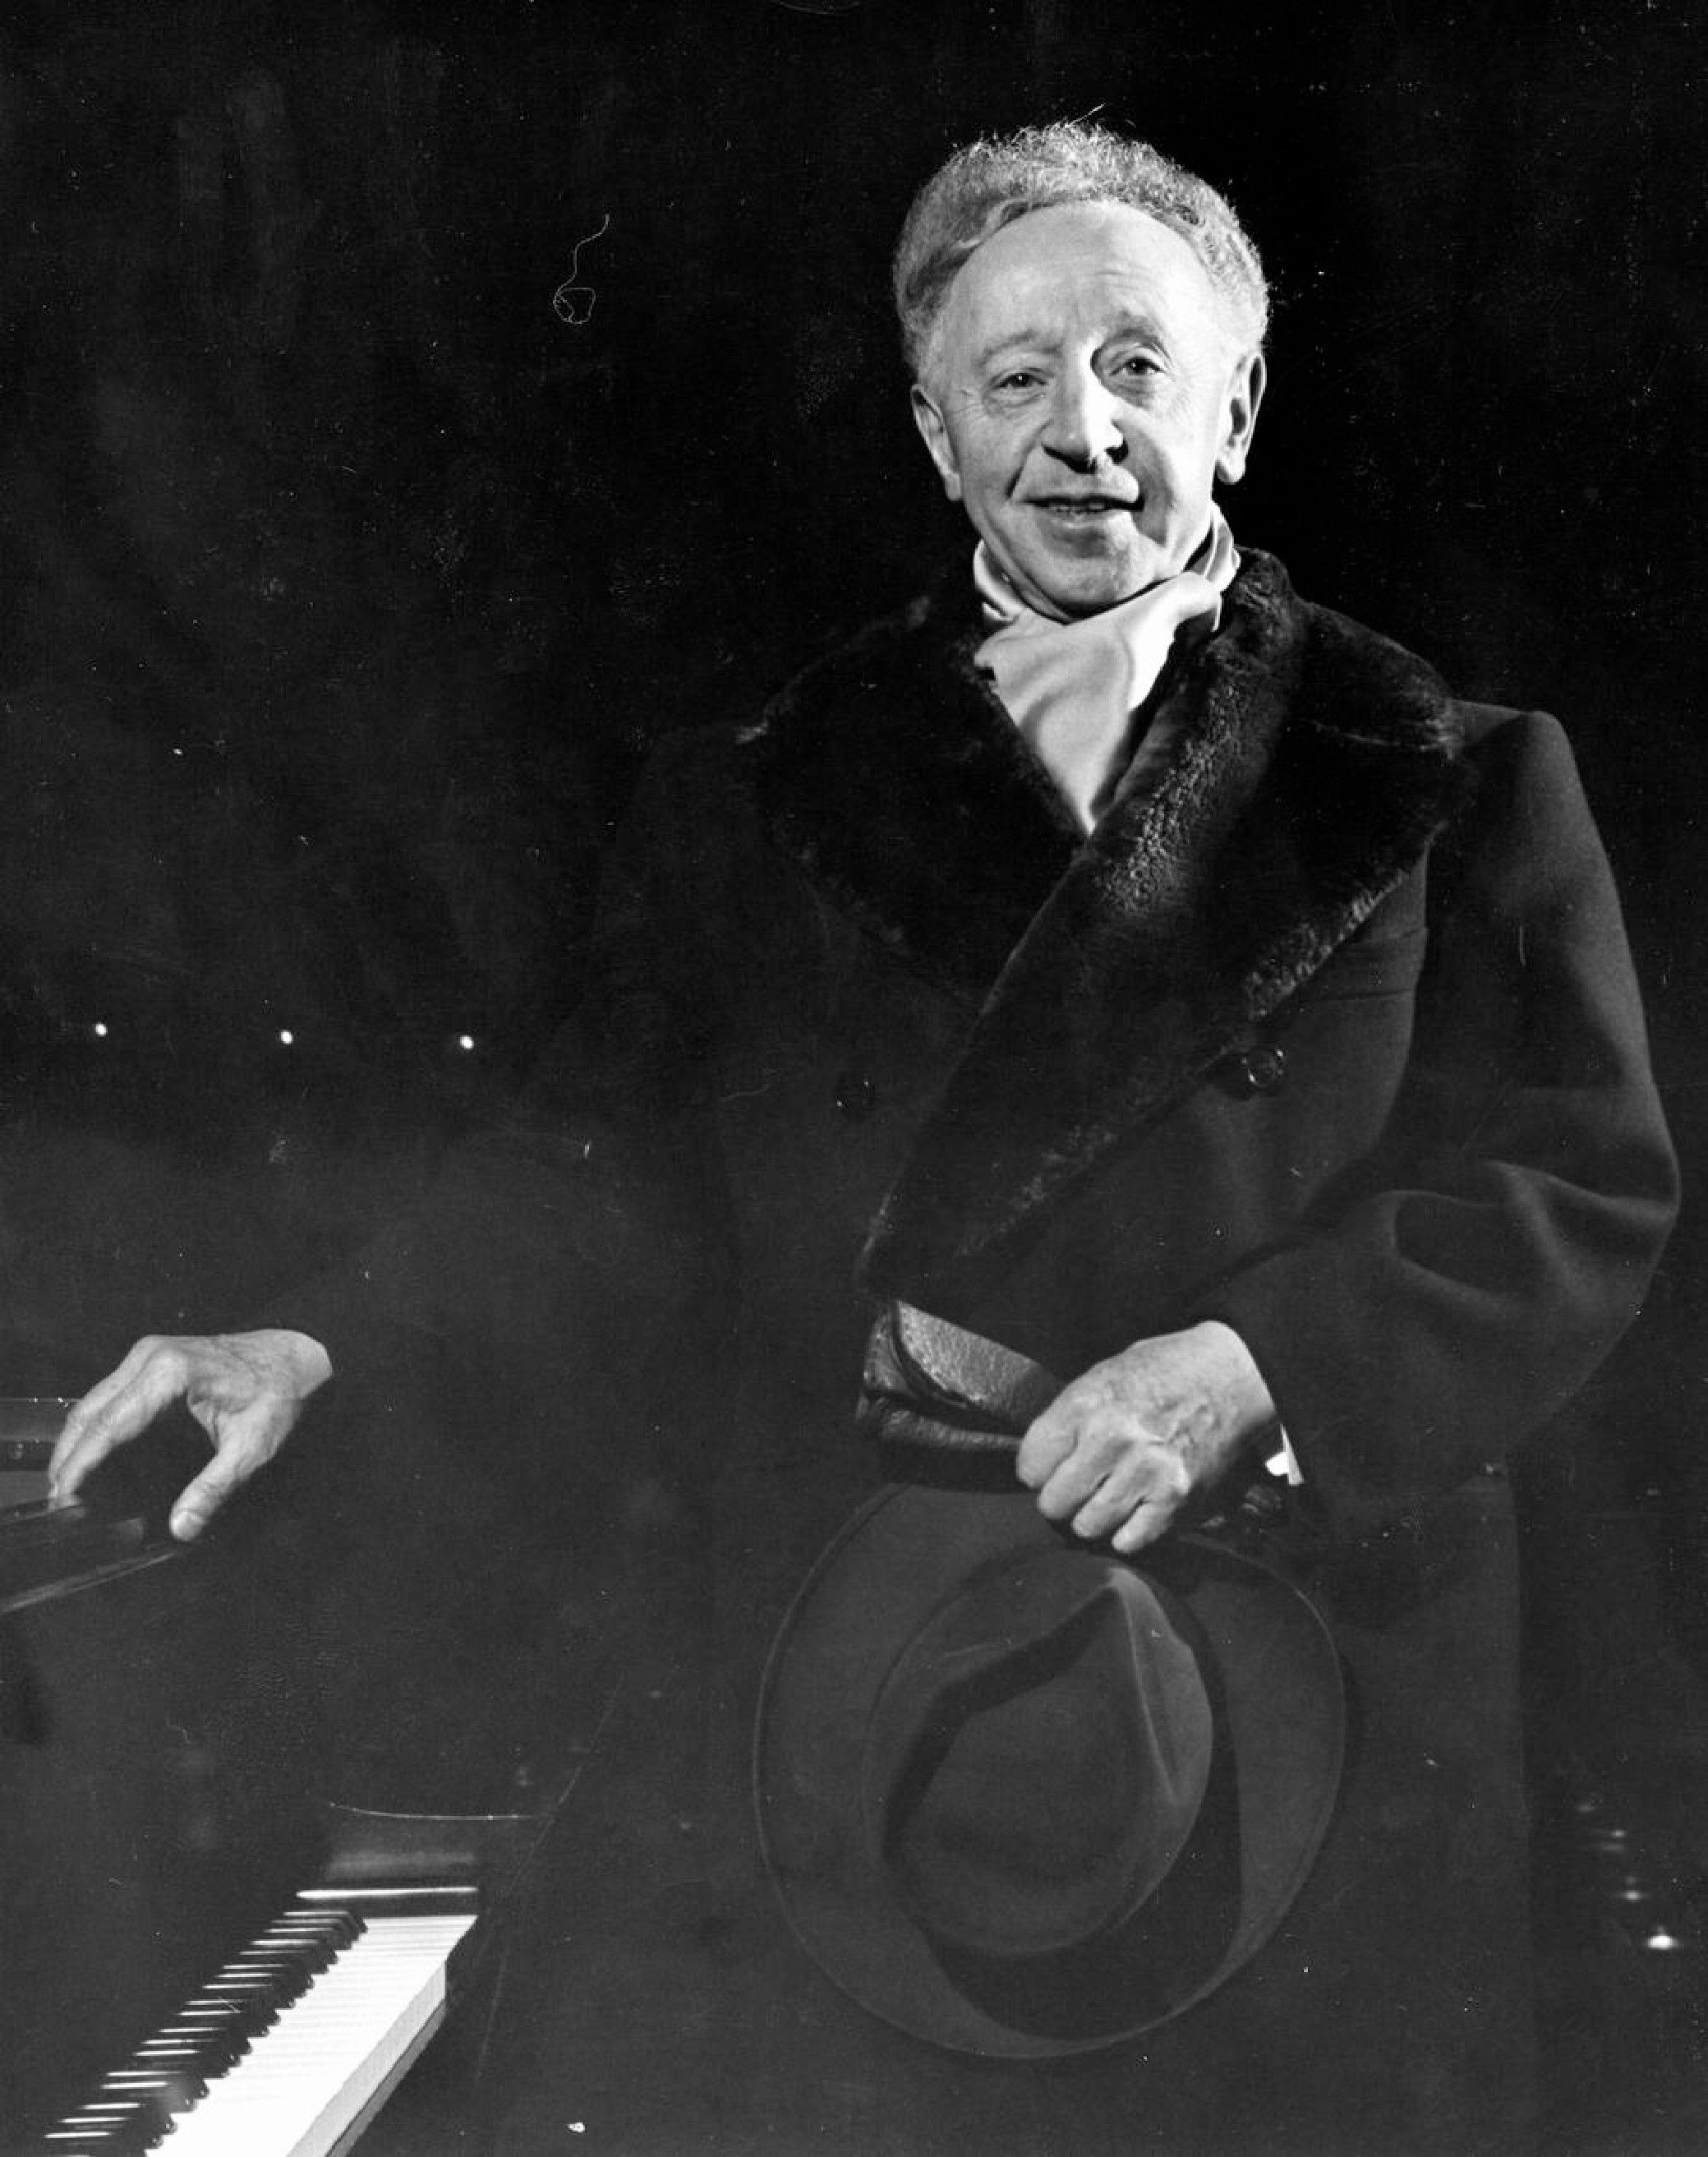 Arthur Rubinstein With Images Music History Classical Music